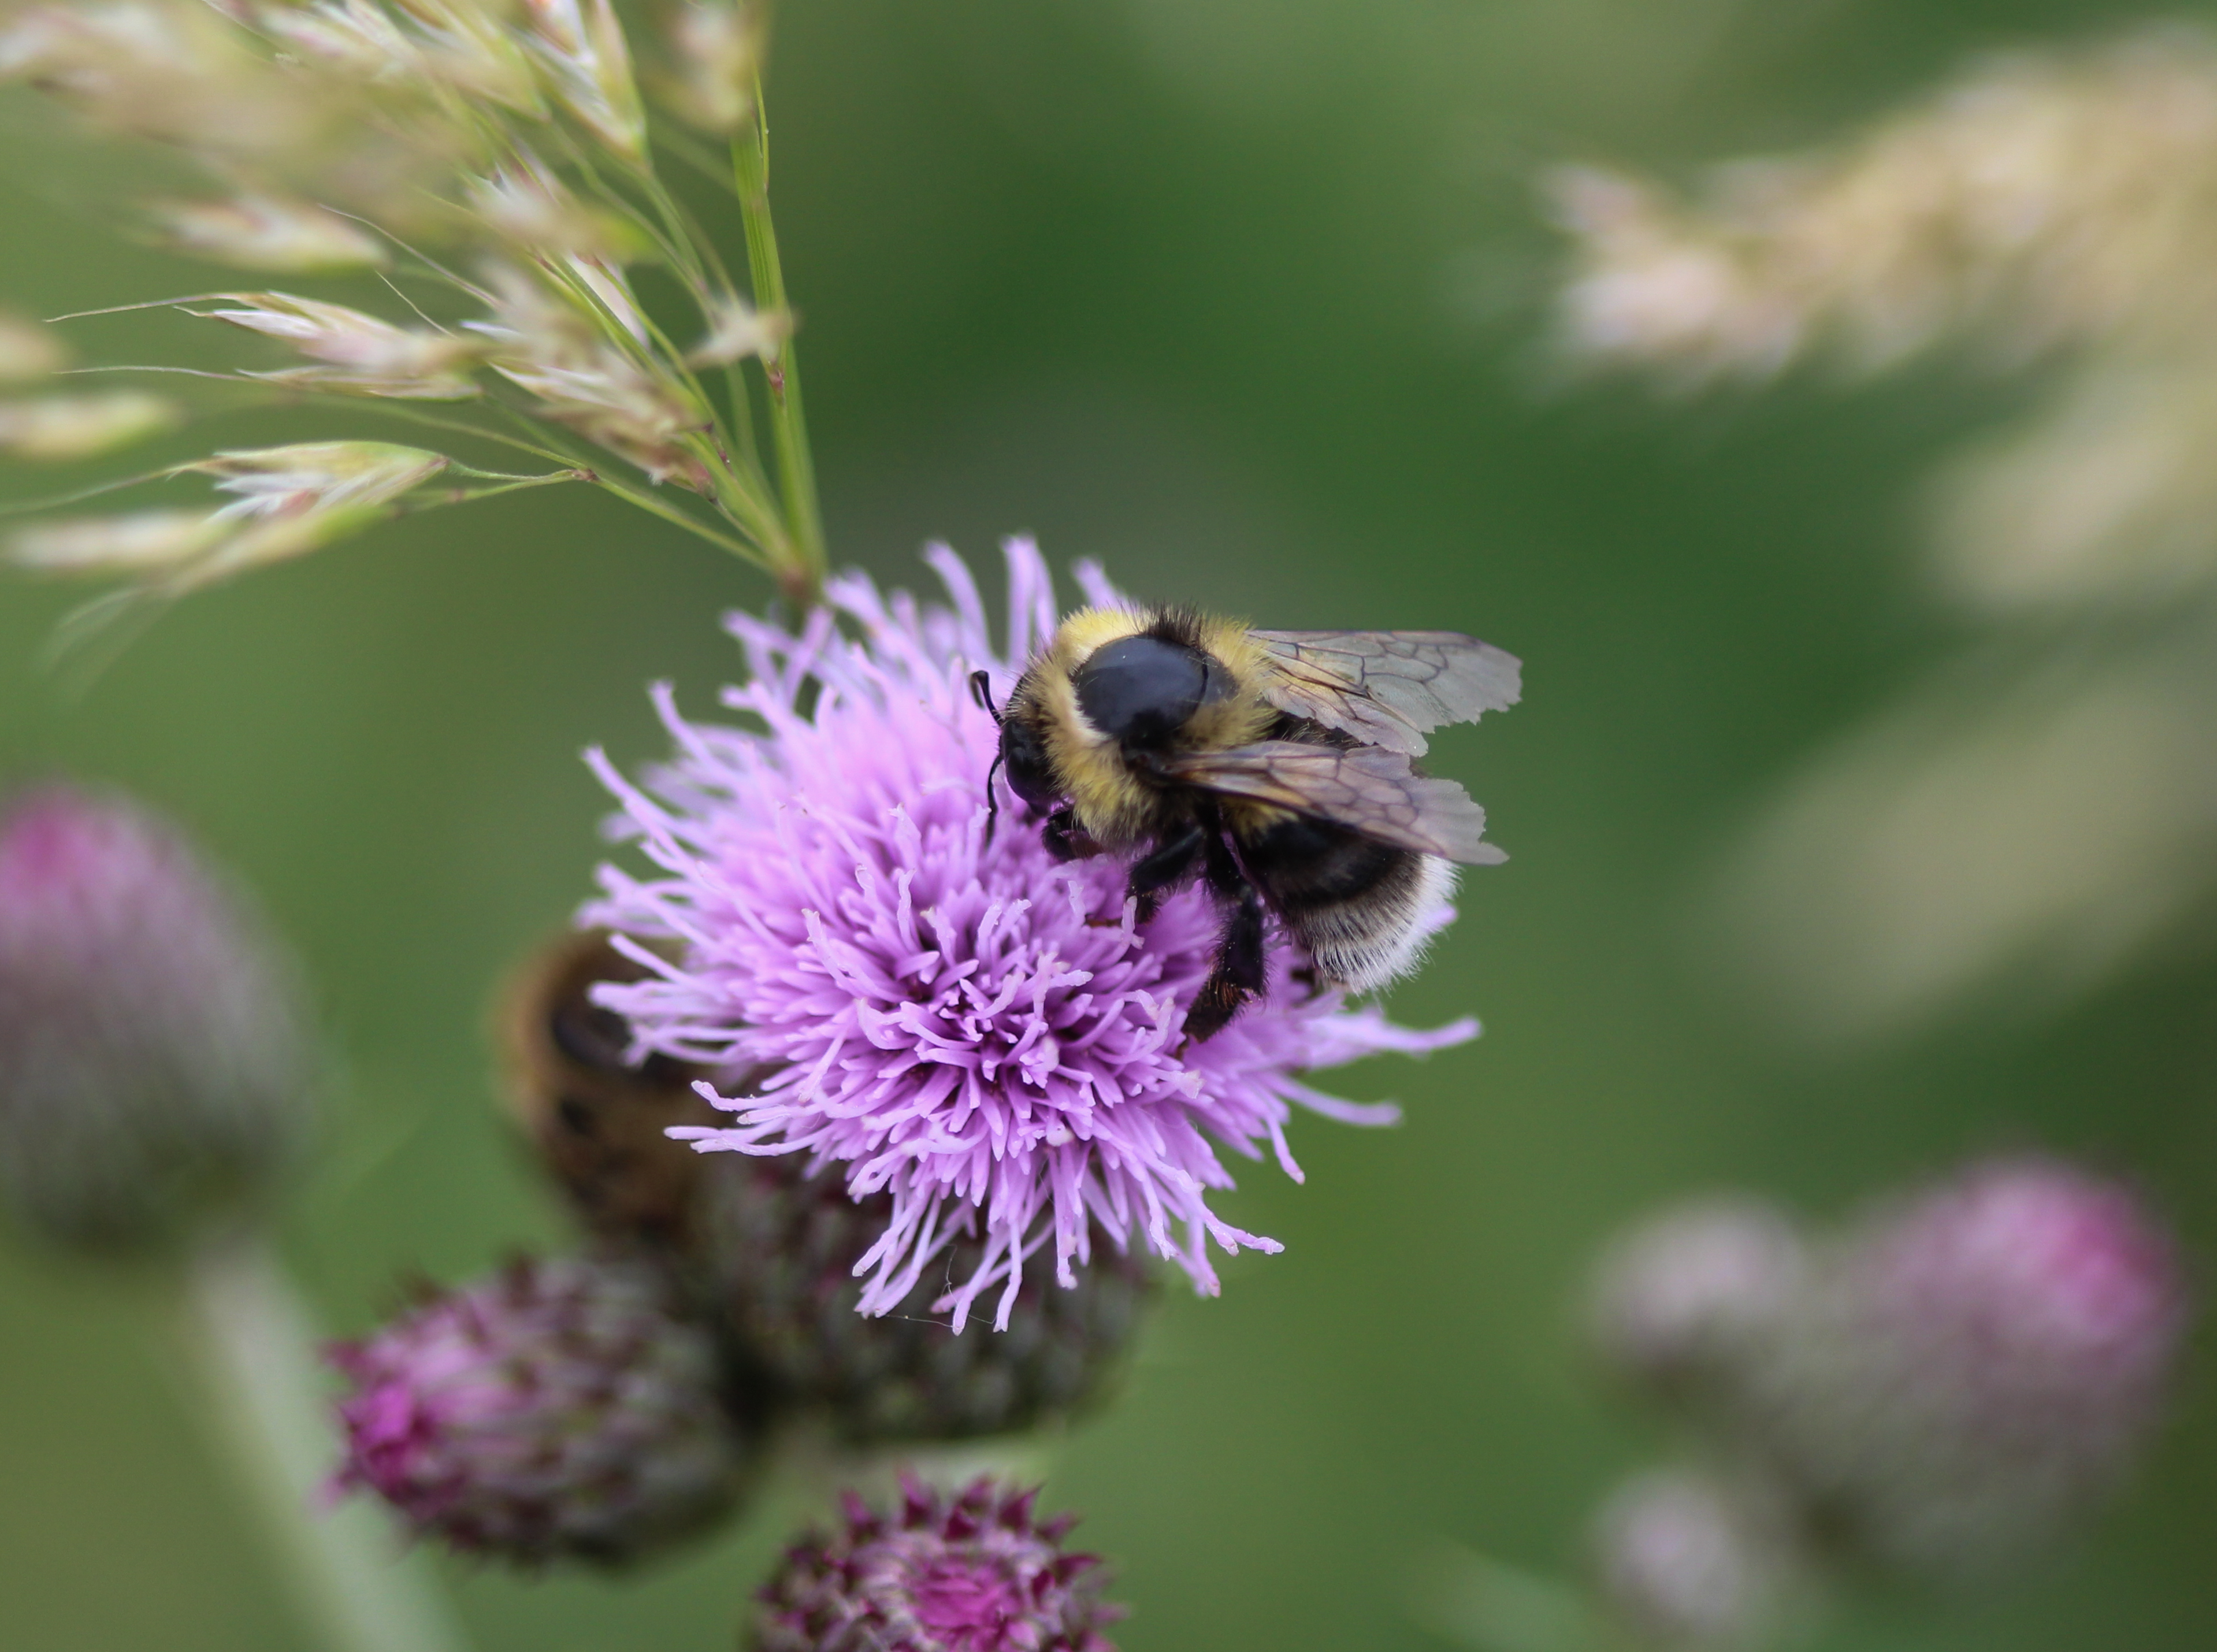 Bombus sylvarum, the shrill carder bee or knapweed carder bee, collecting nectar from flower